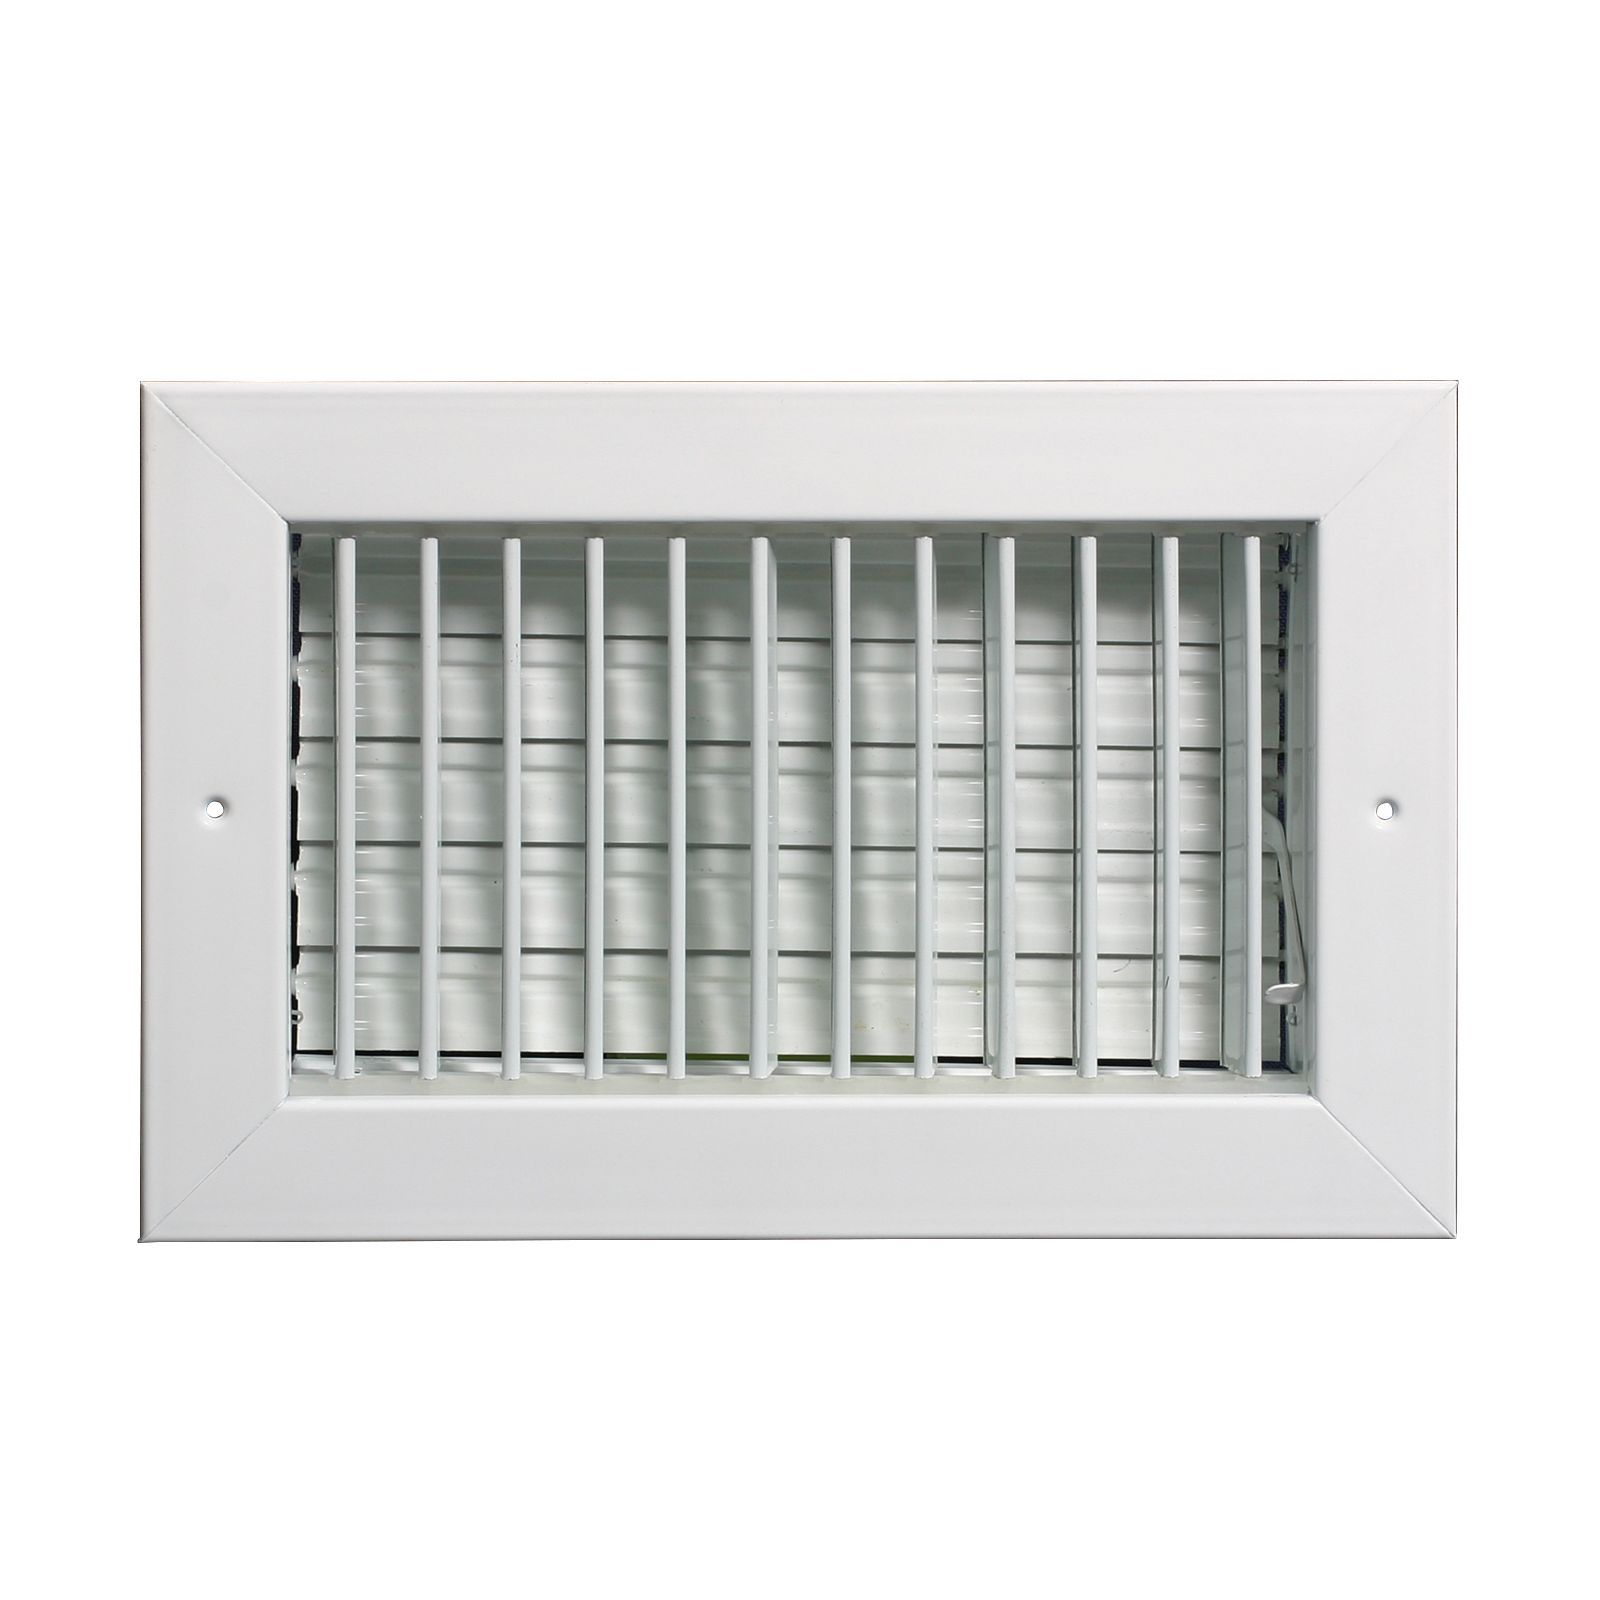 "Grille Tech VM1406 - Aluminum Vertical Blade Sidewall Register , Multi-Shutter Damper 14"" X 6"" White"